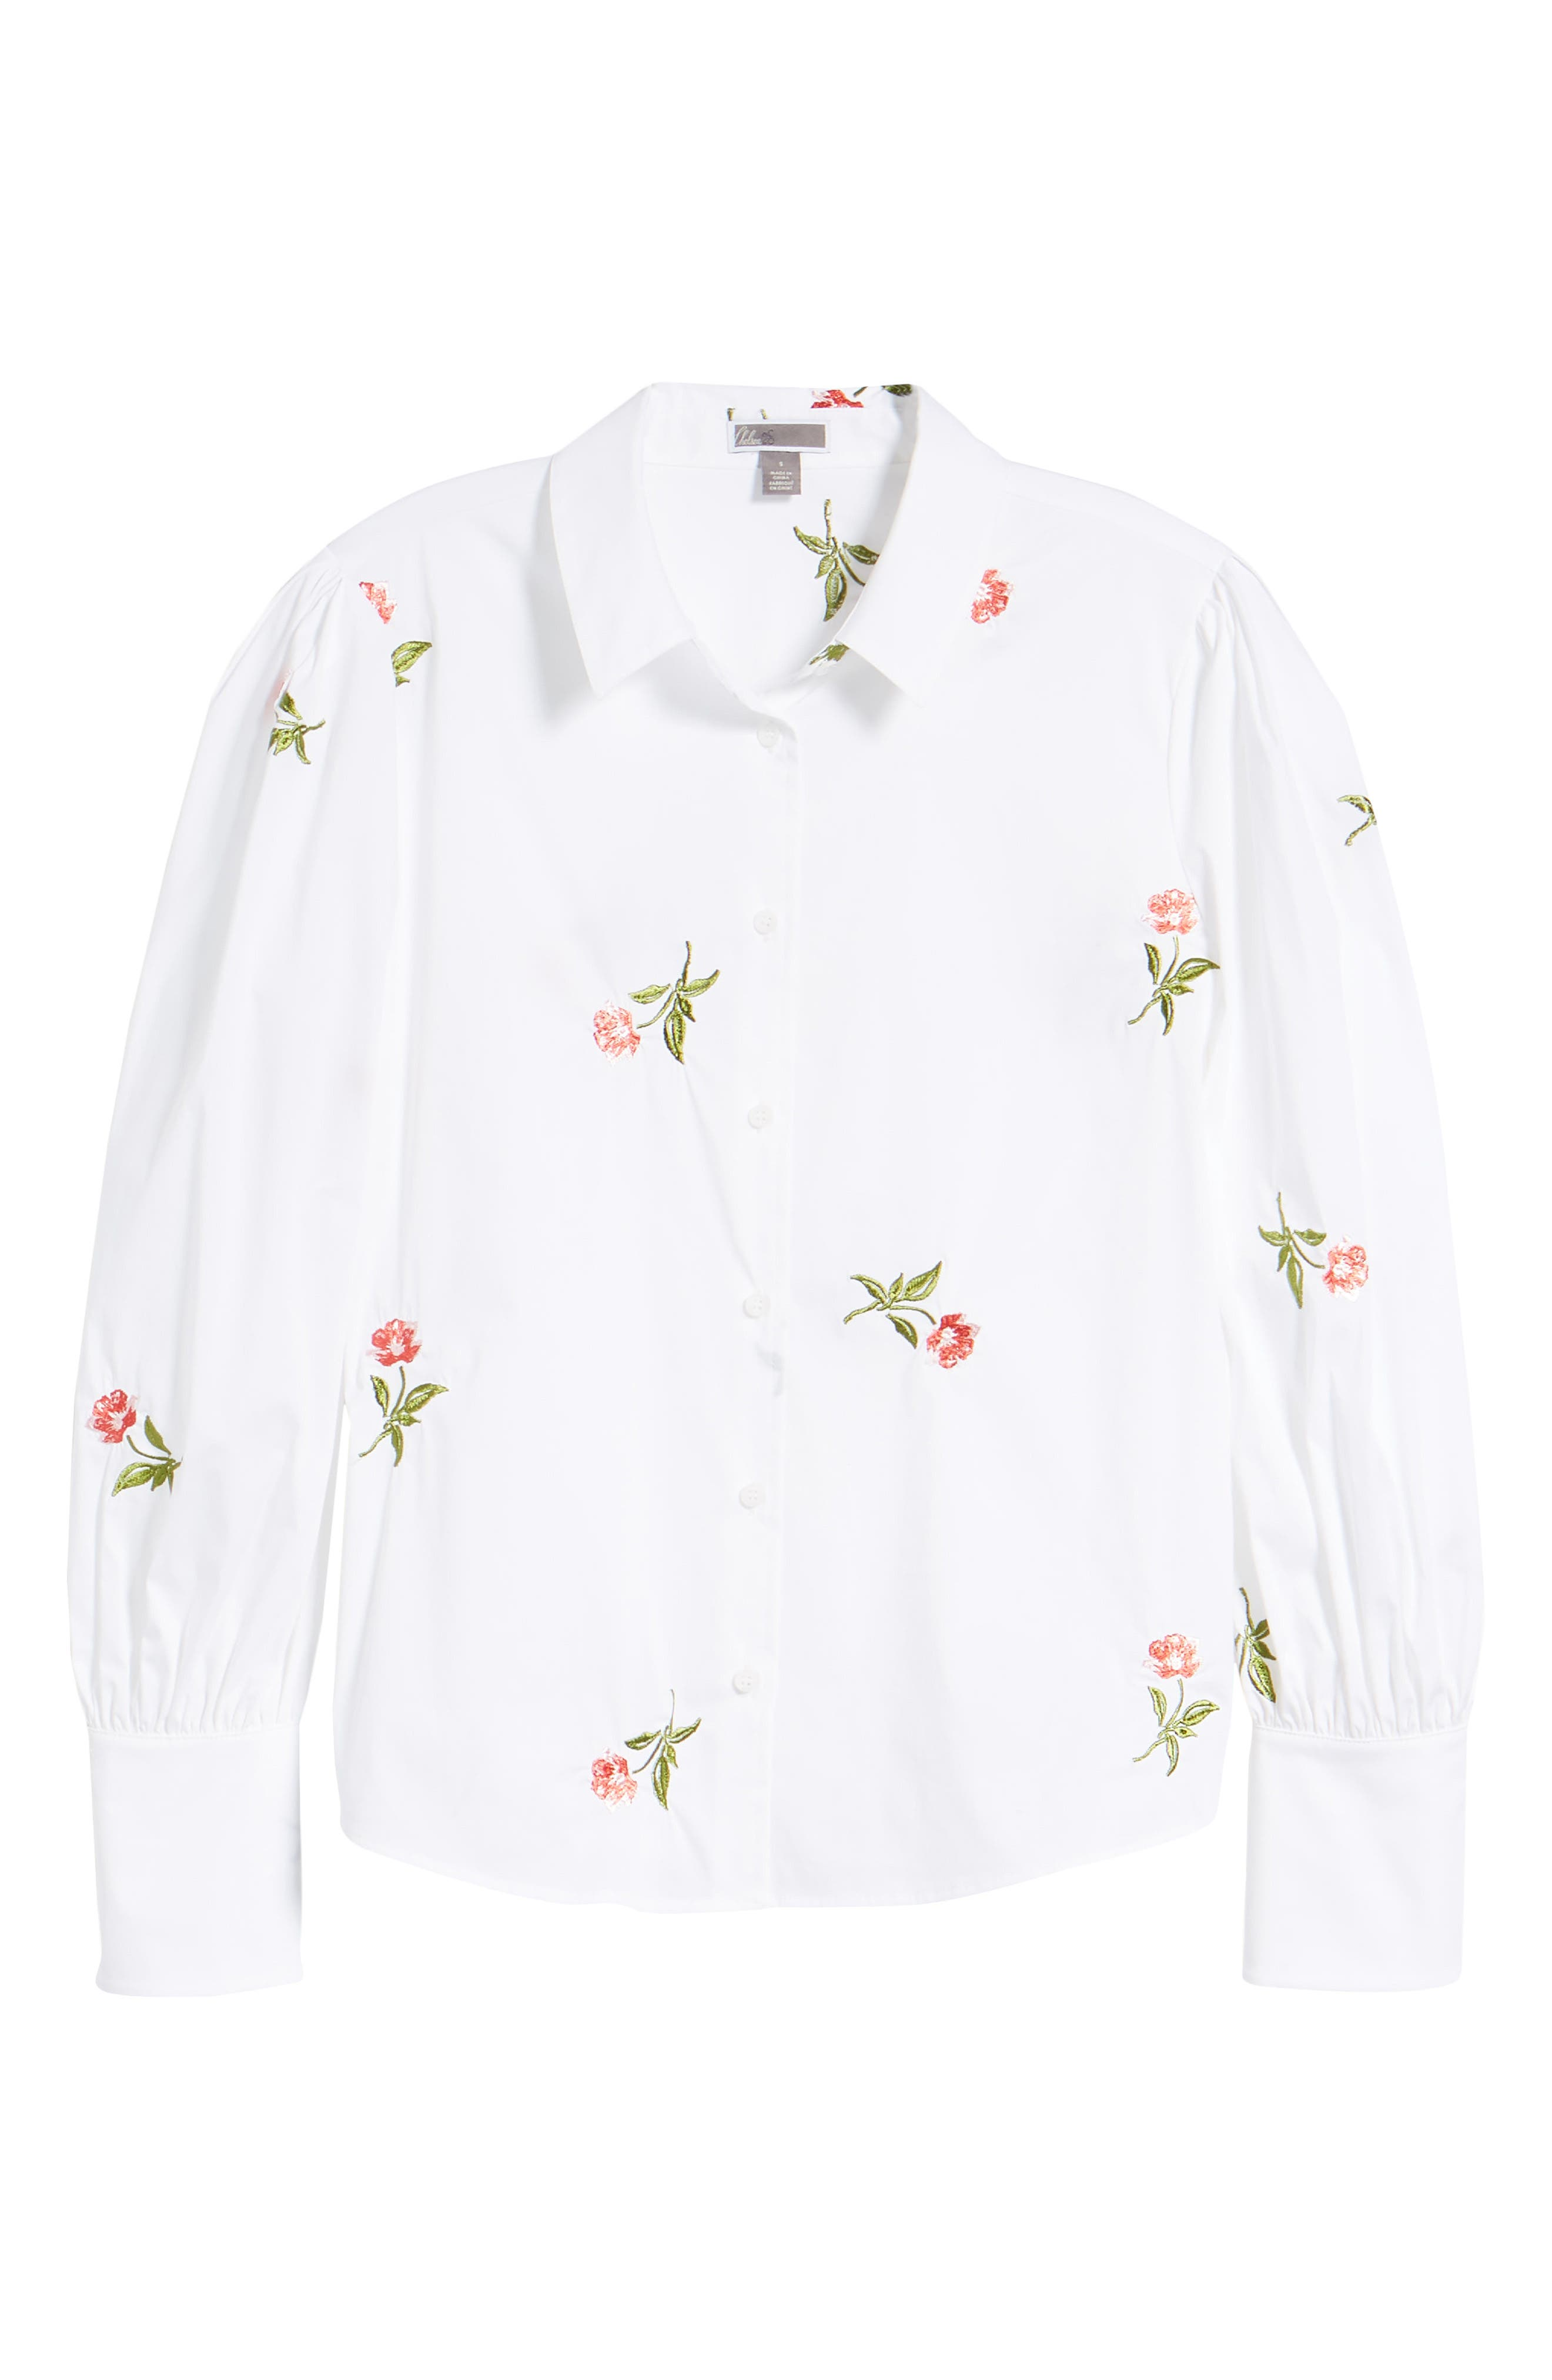 CHELSEA28,                             Embroidered Woven Shirt,                             Alternate thumbnail 7, color,                             WHITE- CORAL BUD EMBROIDERY